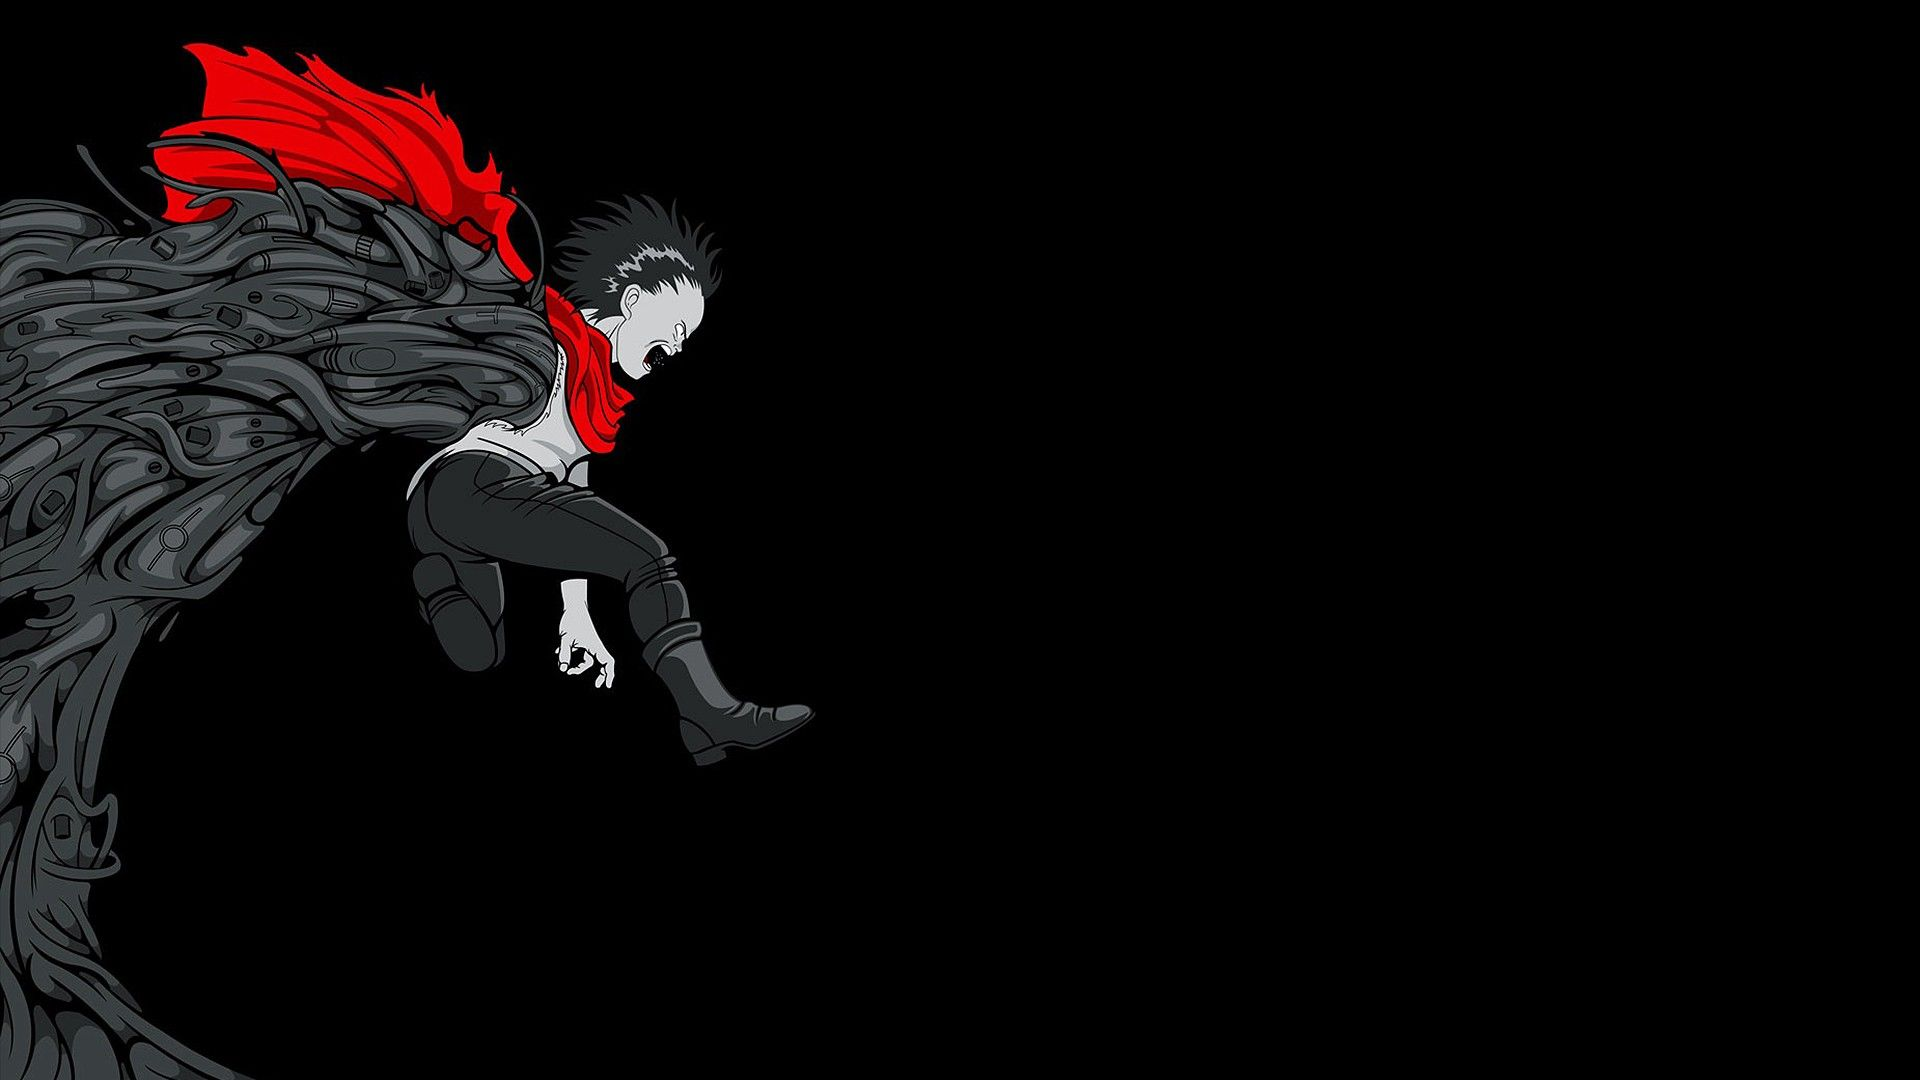 1920x1080 Akira, movies, Tetsuo, anime, fan art, black background, Kaneda ...